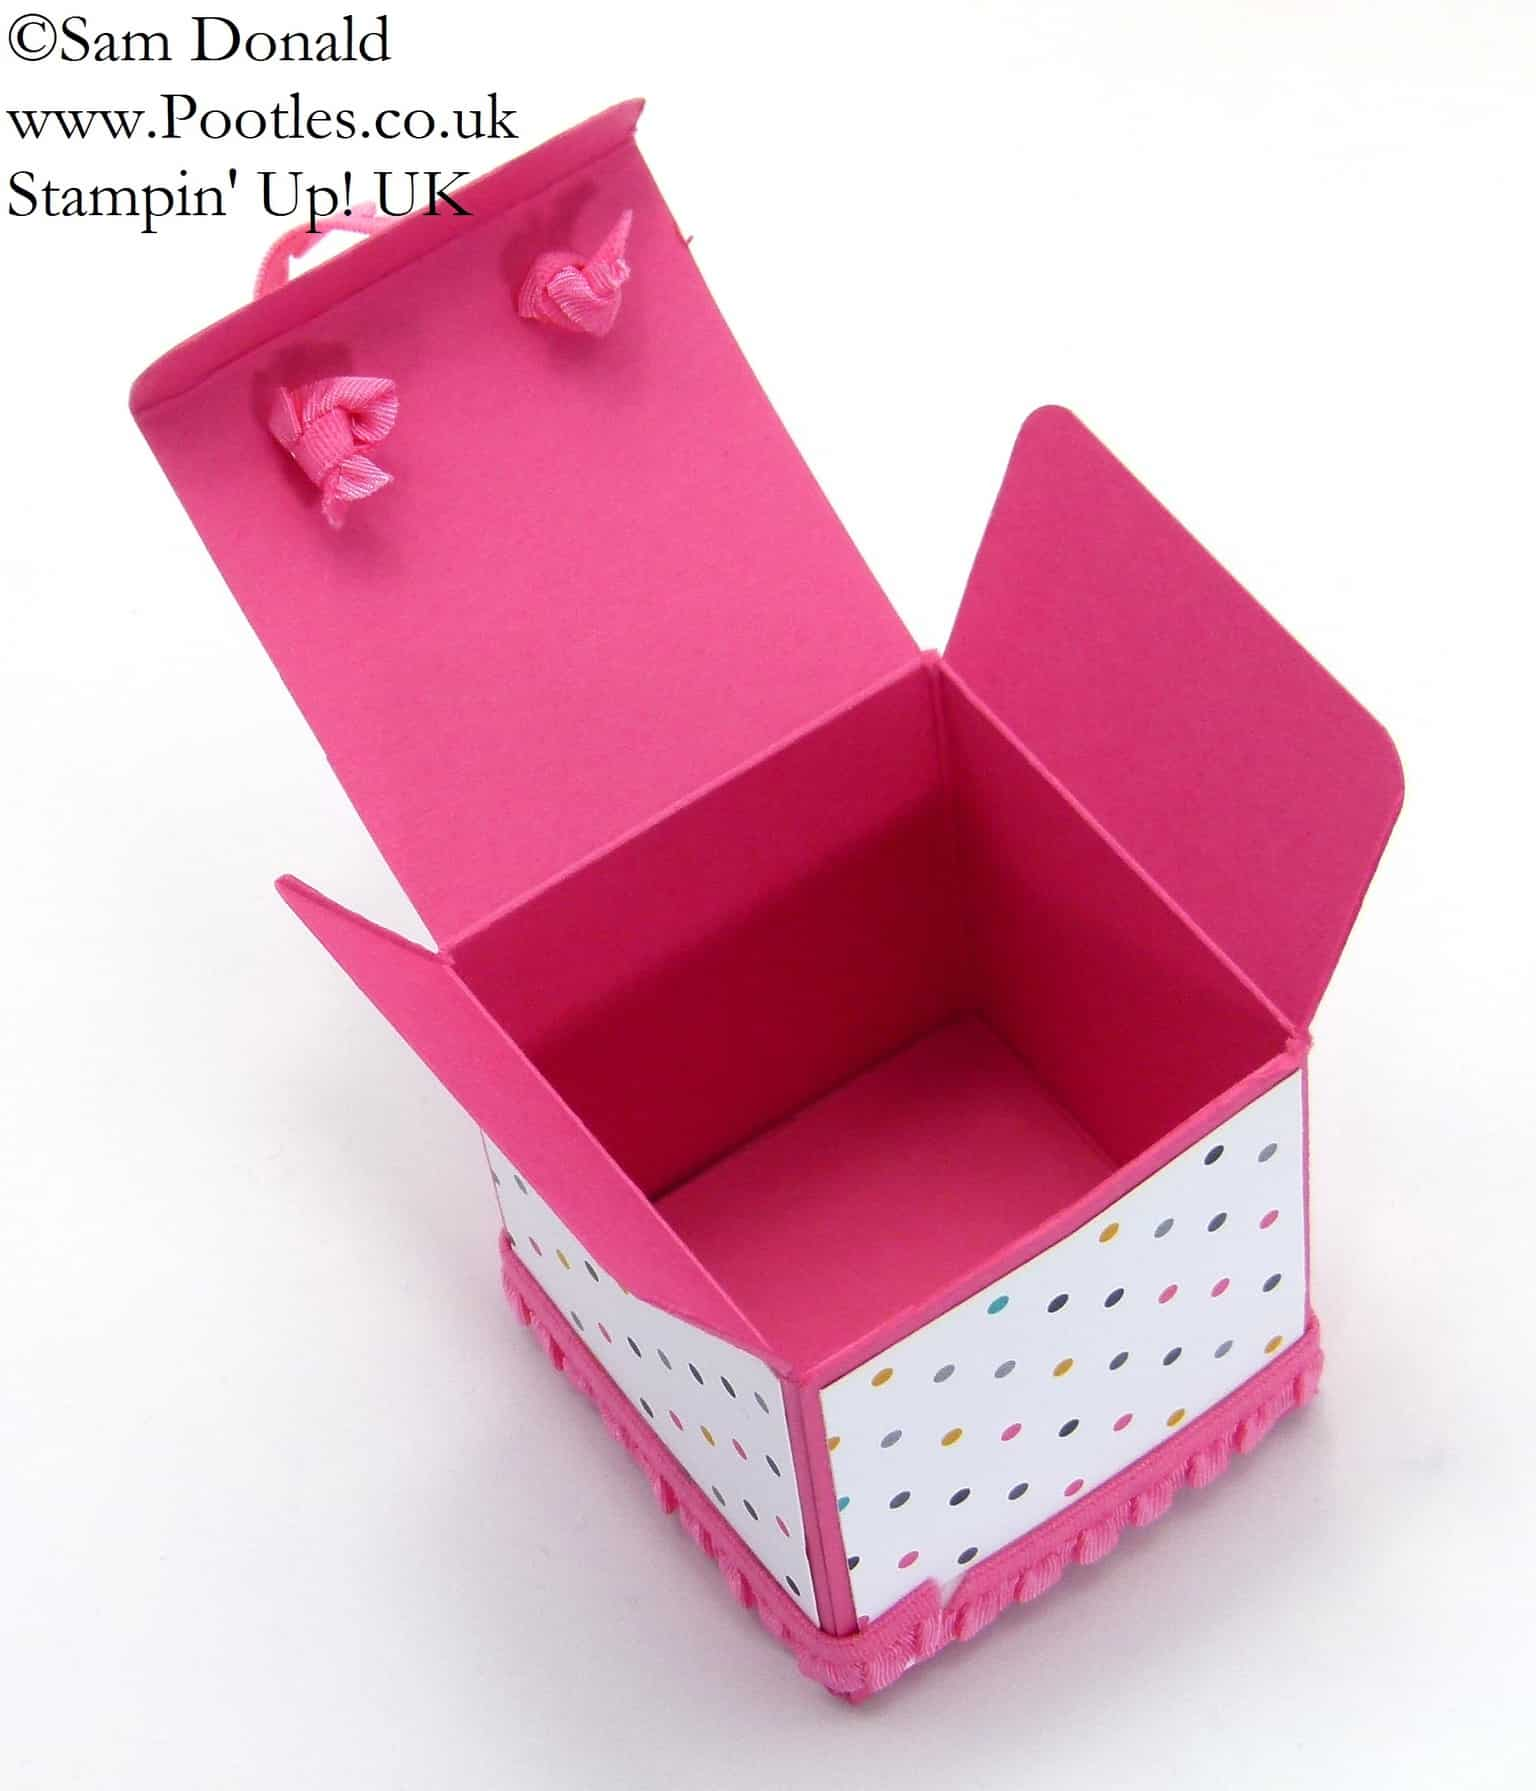 POOTLES Stampin' Up! UK Balm Jar Gift Box Tutorial 2 (1)